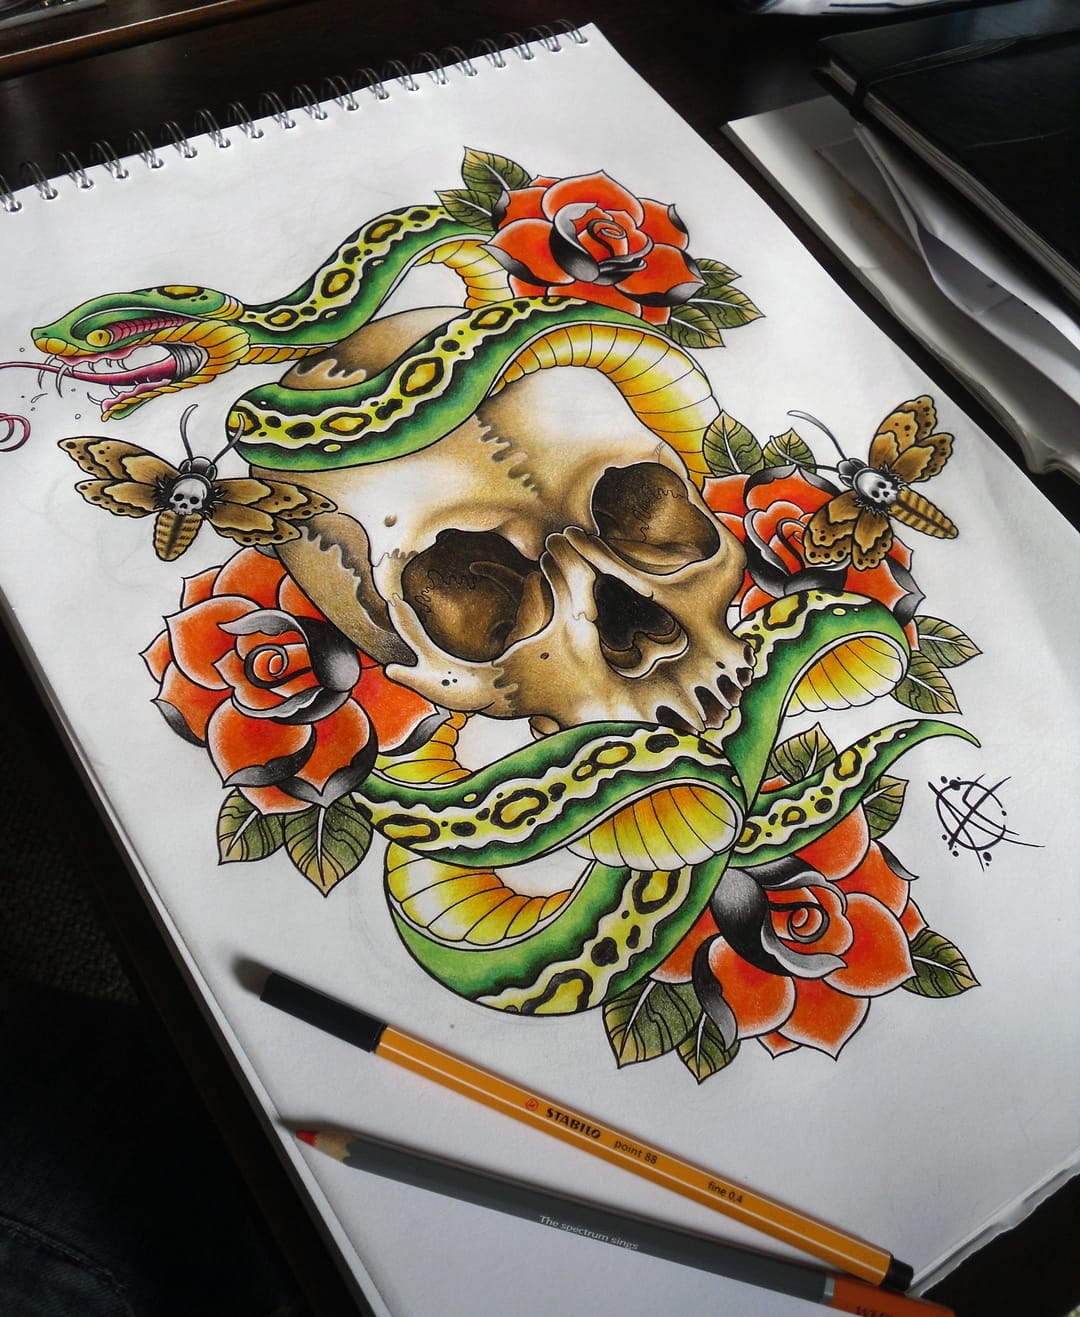 Traditional Snake & Skull design done by Aaron Frost.